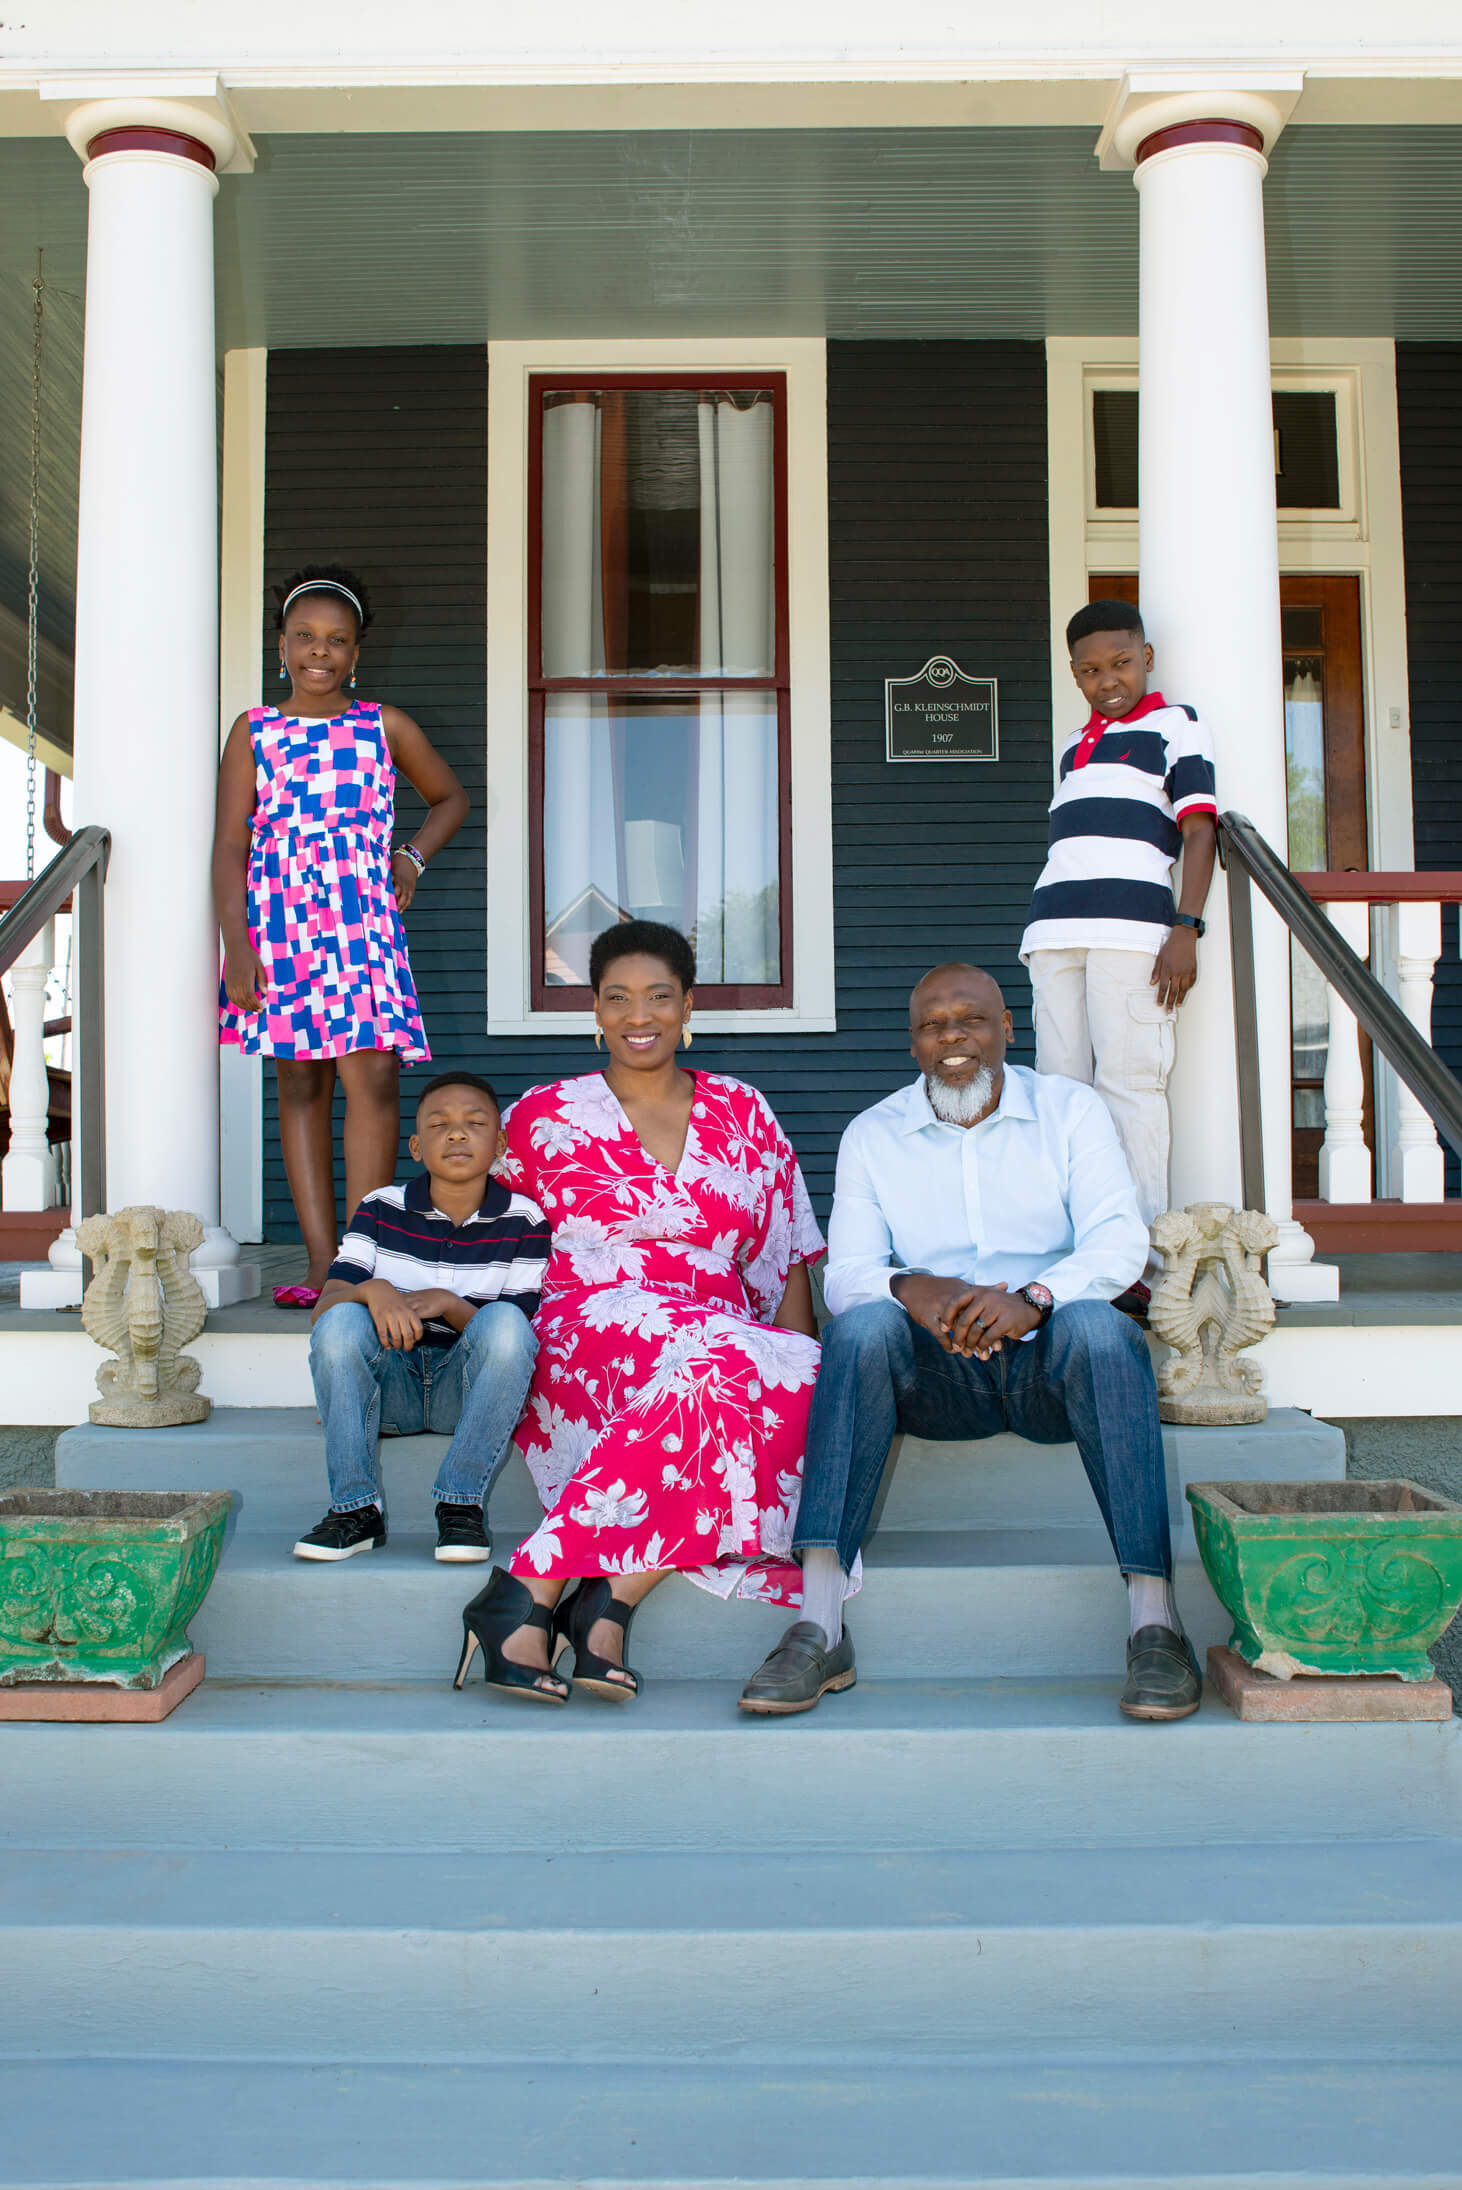 Denise and Cecil Ennett and family image